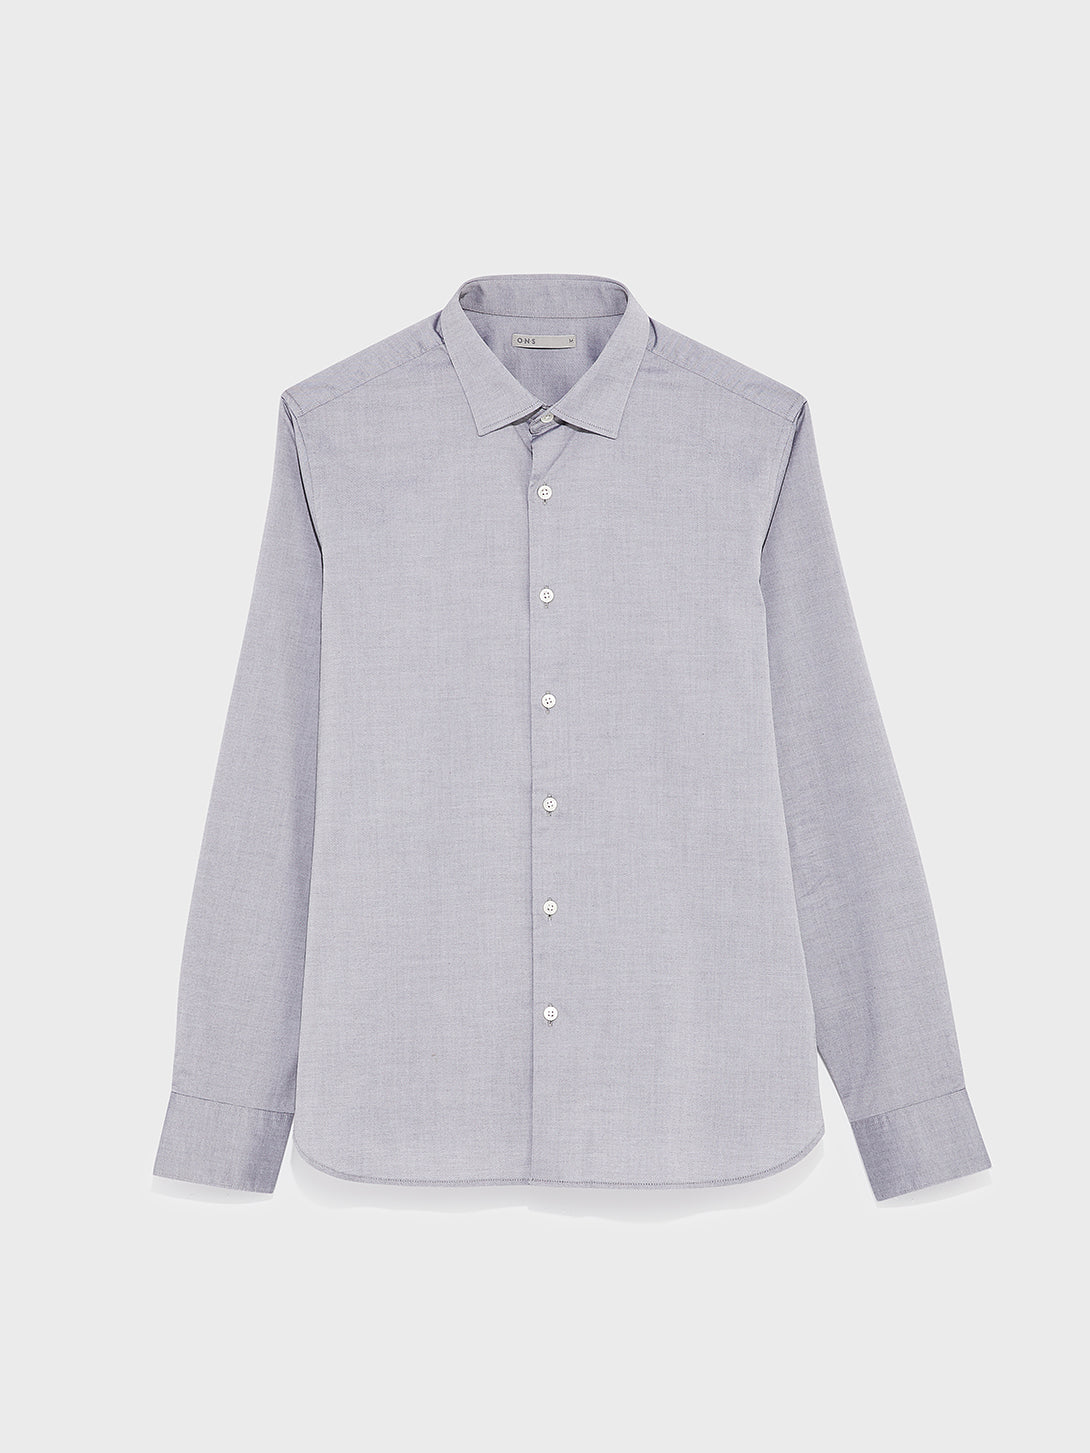 black friday deals ONS men's clothing ADRIAN PINPOINT OXFORD SHIRT GREY